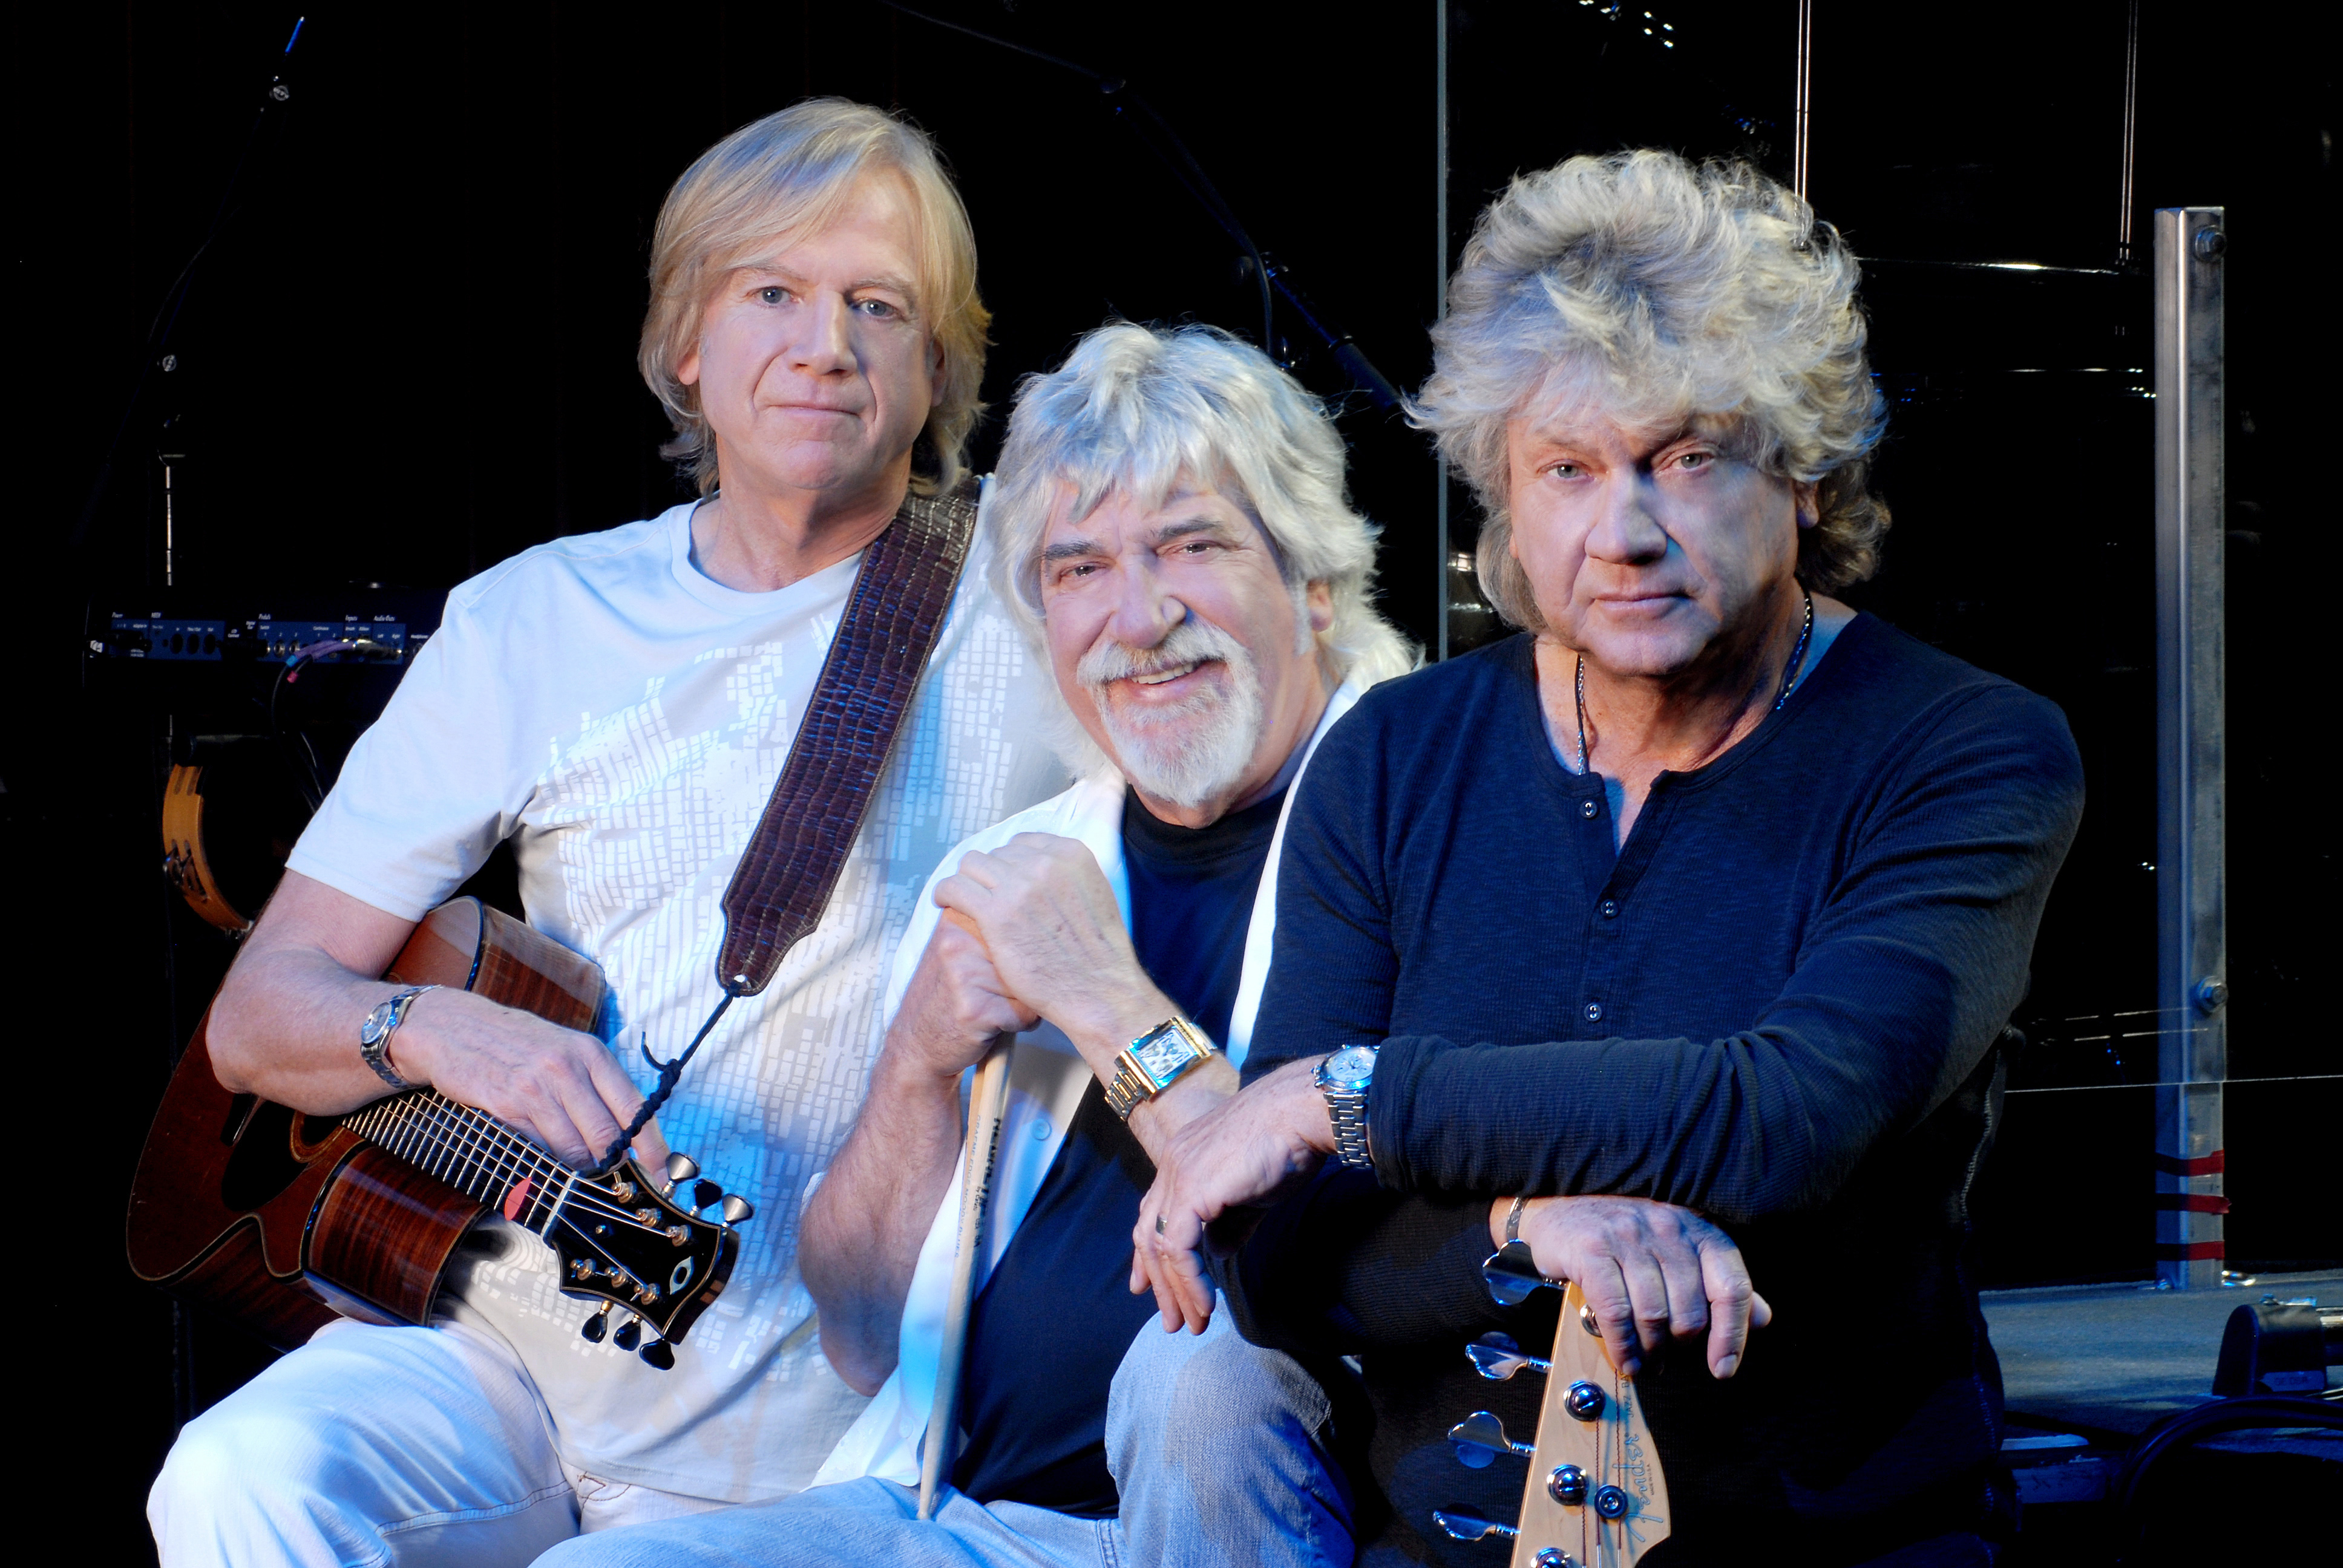 Concert Moody Blues